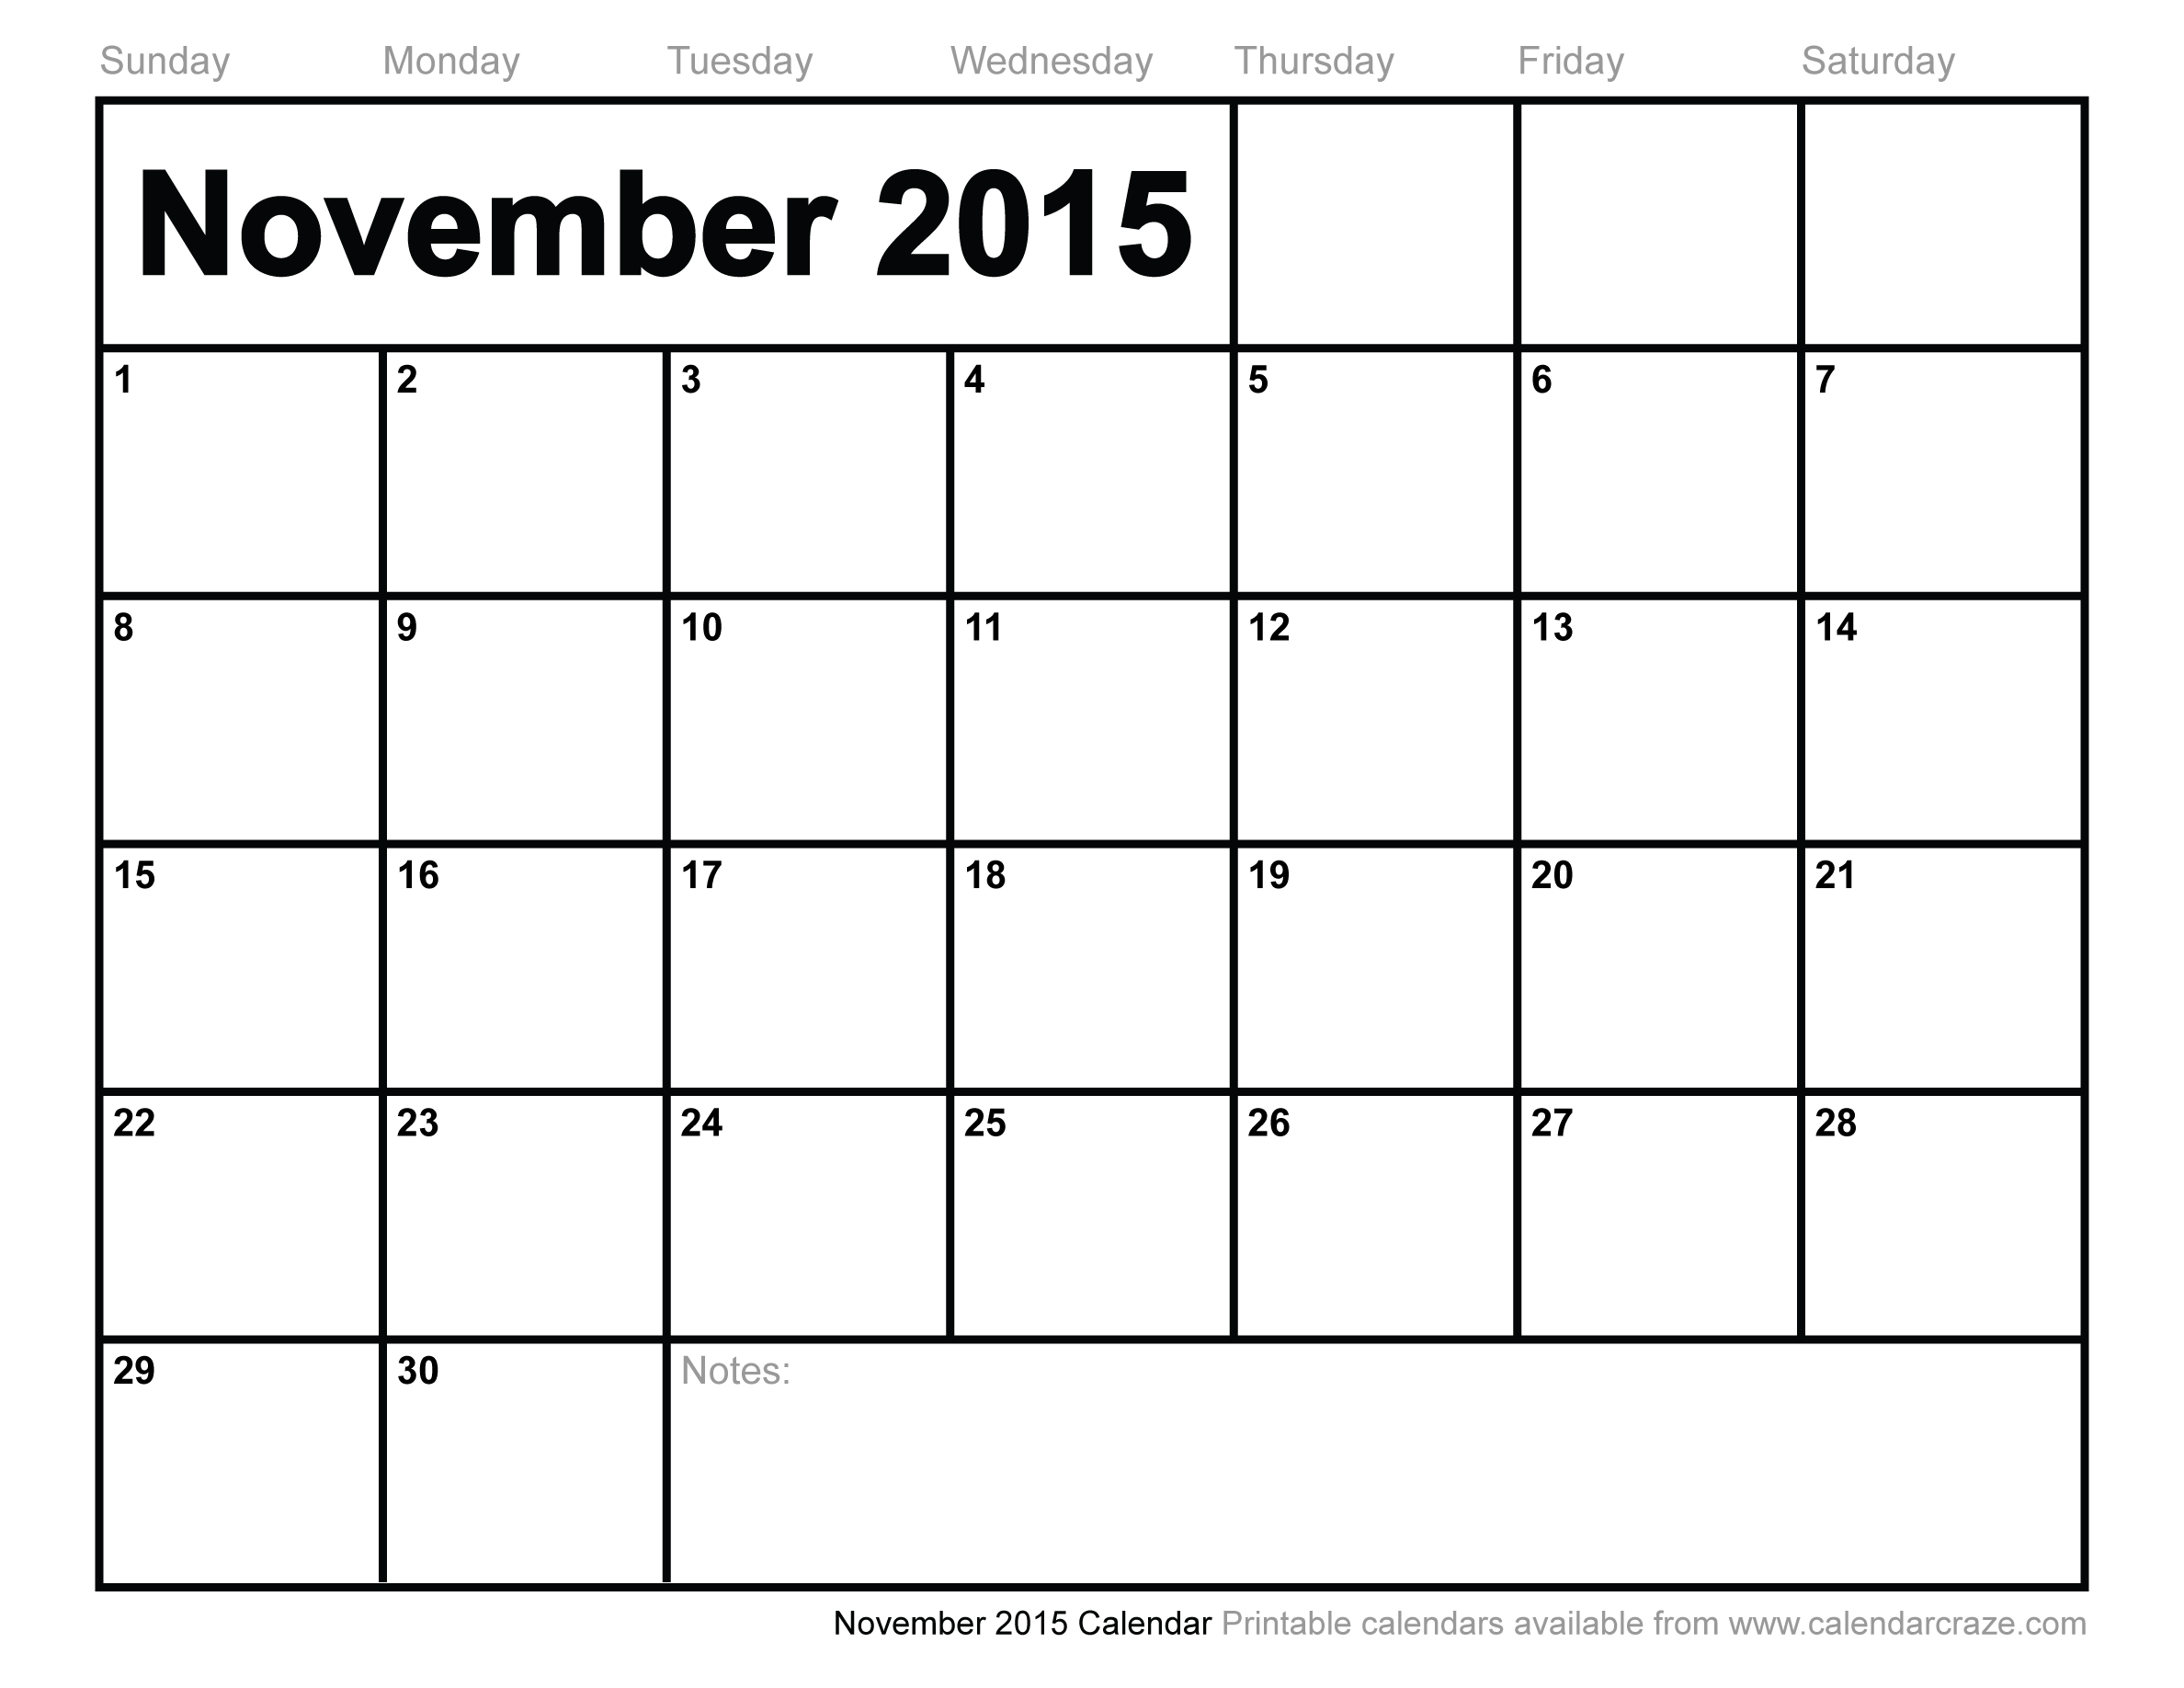 free november 2015 calendar template April.onthemarch.co